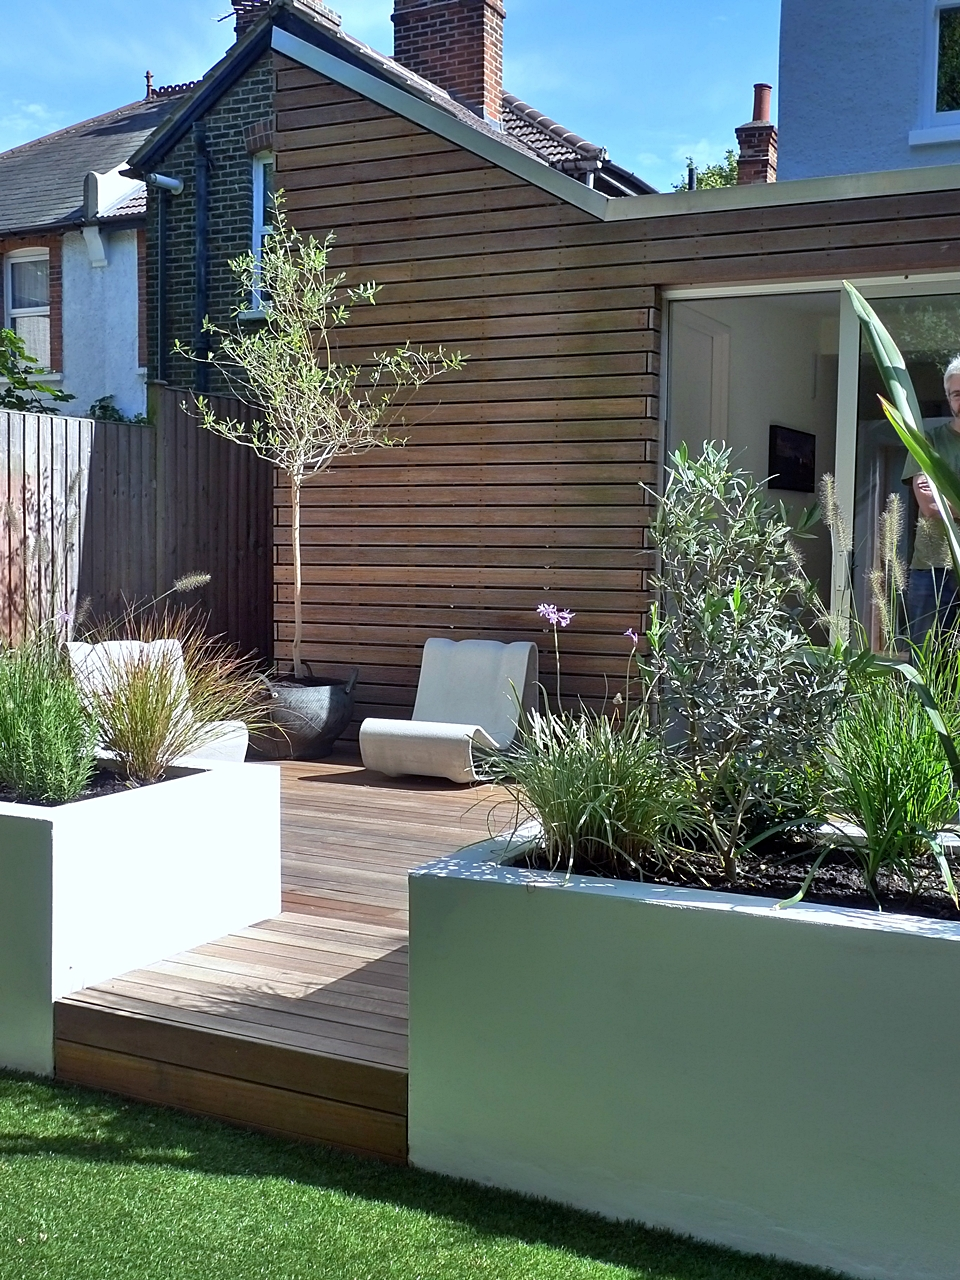 Contemporary garden design london perfect home and for Landscape design london